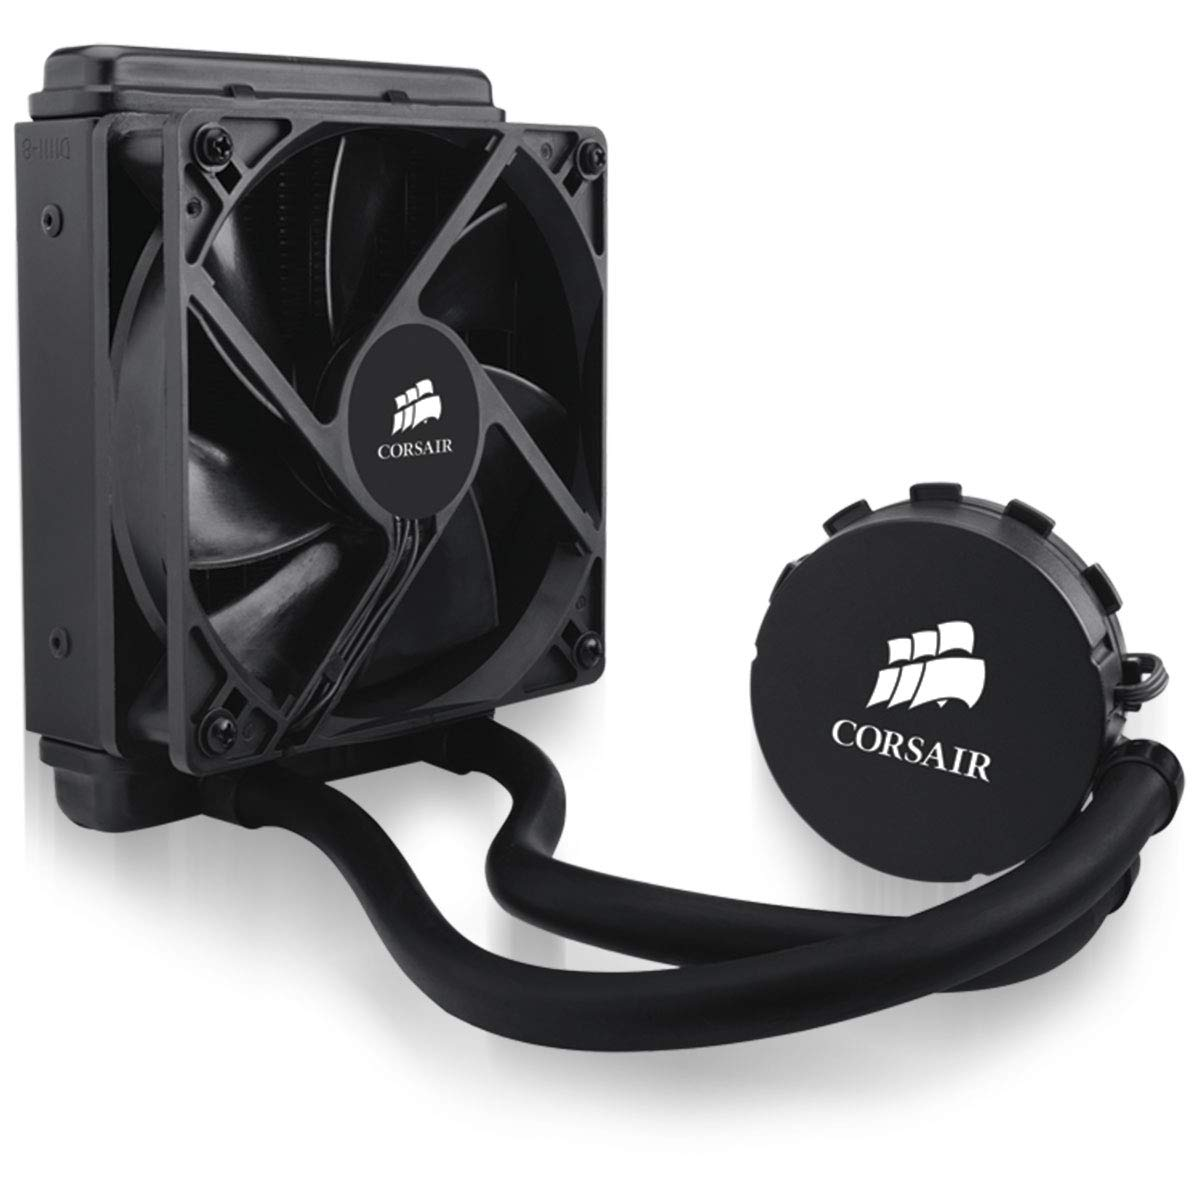 CORSAIR Hydro Series H55 AIO Liquid CPU Cooler, 120mm Radiator, 120mm Fan